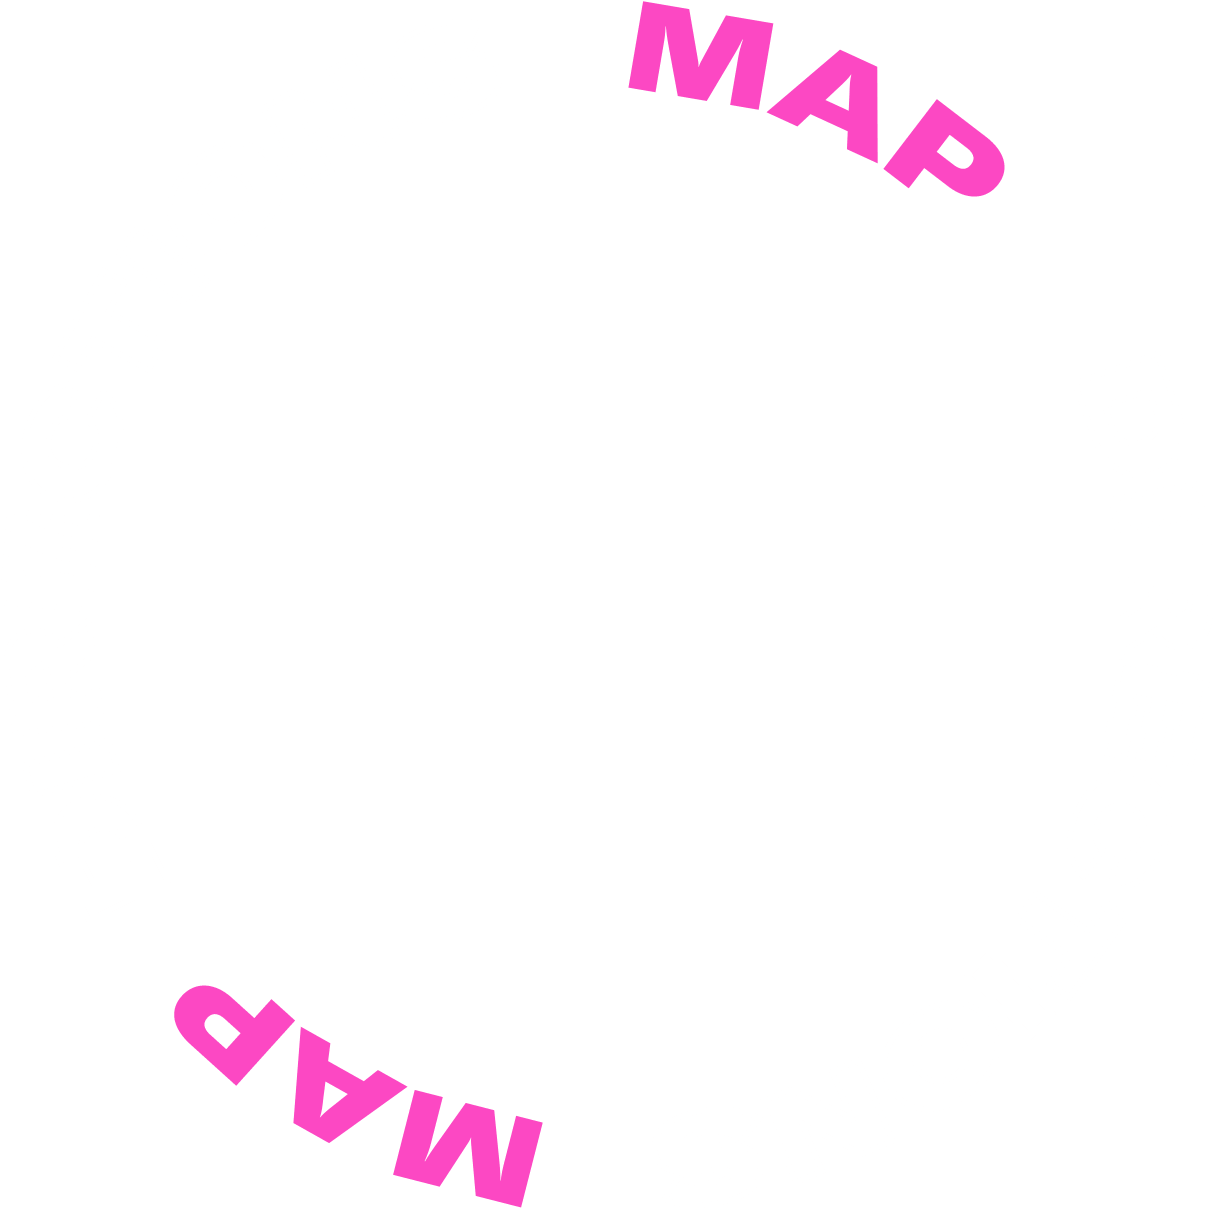 MAP / DIRECTION